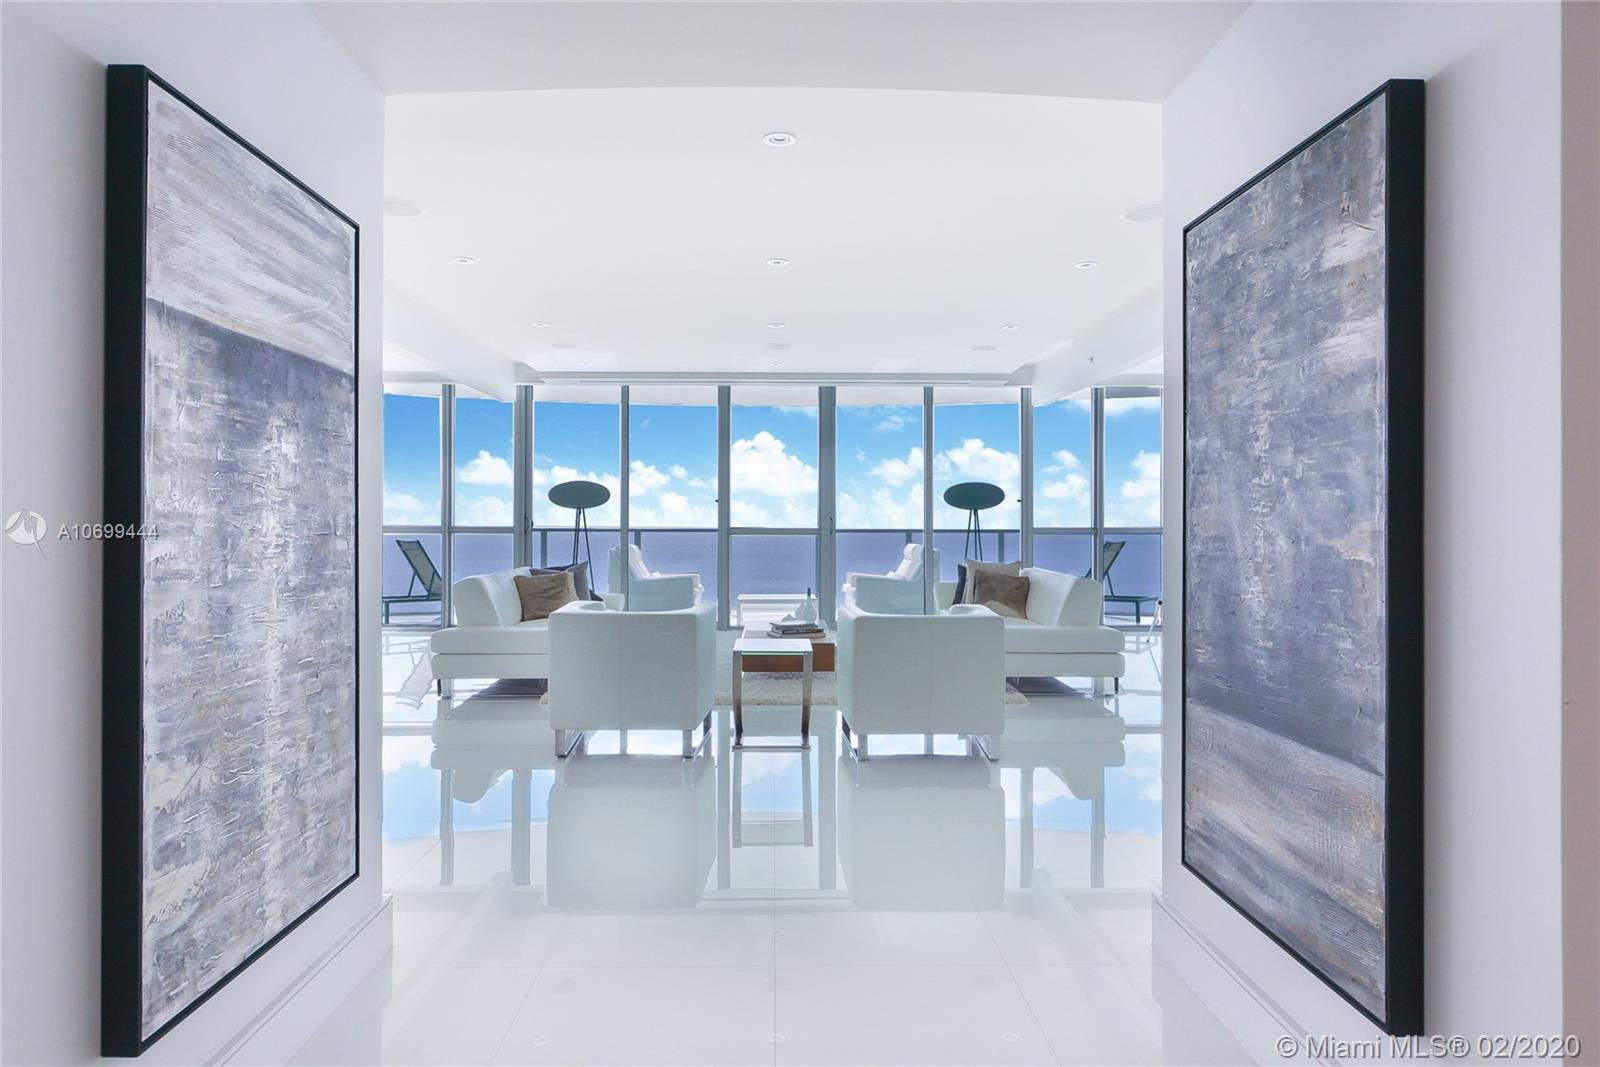 HOLLYWOOD GEM, OCEAN PALMS LUXURY CONDOMINIUM. By far the most compelling 3BR converted to 4BR floor plan in the area. Private elevator leads into a VERY EXCLUSIVE BRIGHT, OCEAN FACING UNIT. This breathtaking 08 line property provides SPECTACULAR VIEWS from the 10th floor where panoramic ocean and beach vistas display the best Hollywood has to offer. This gorgeous, sleek and modern apartment features white glass floors, modern tiled bathrooms, an ultra-luxurious wine room, custom closets, kitchen w/ Miele & Sub-Zero appliances, surround sound system, alarm & more. Professionally decorated. Wide-open 3091SF floor plan. Outdoor nirvana with over 500SF of entertainment deck for year round sunbathing & outdoor dining. 3 dedicated parking spaces!!!! Furniture for sale!